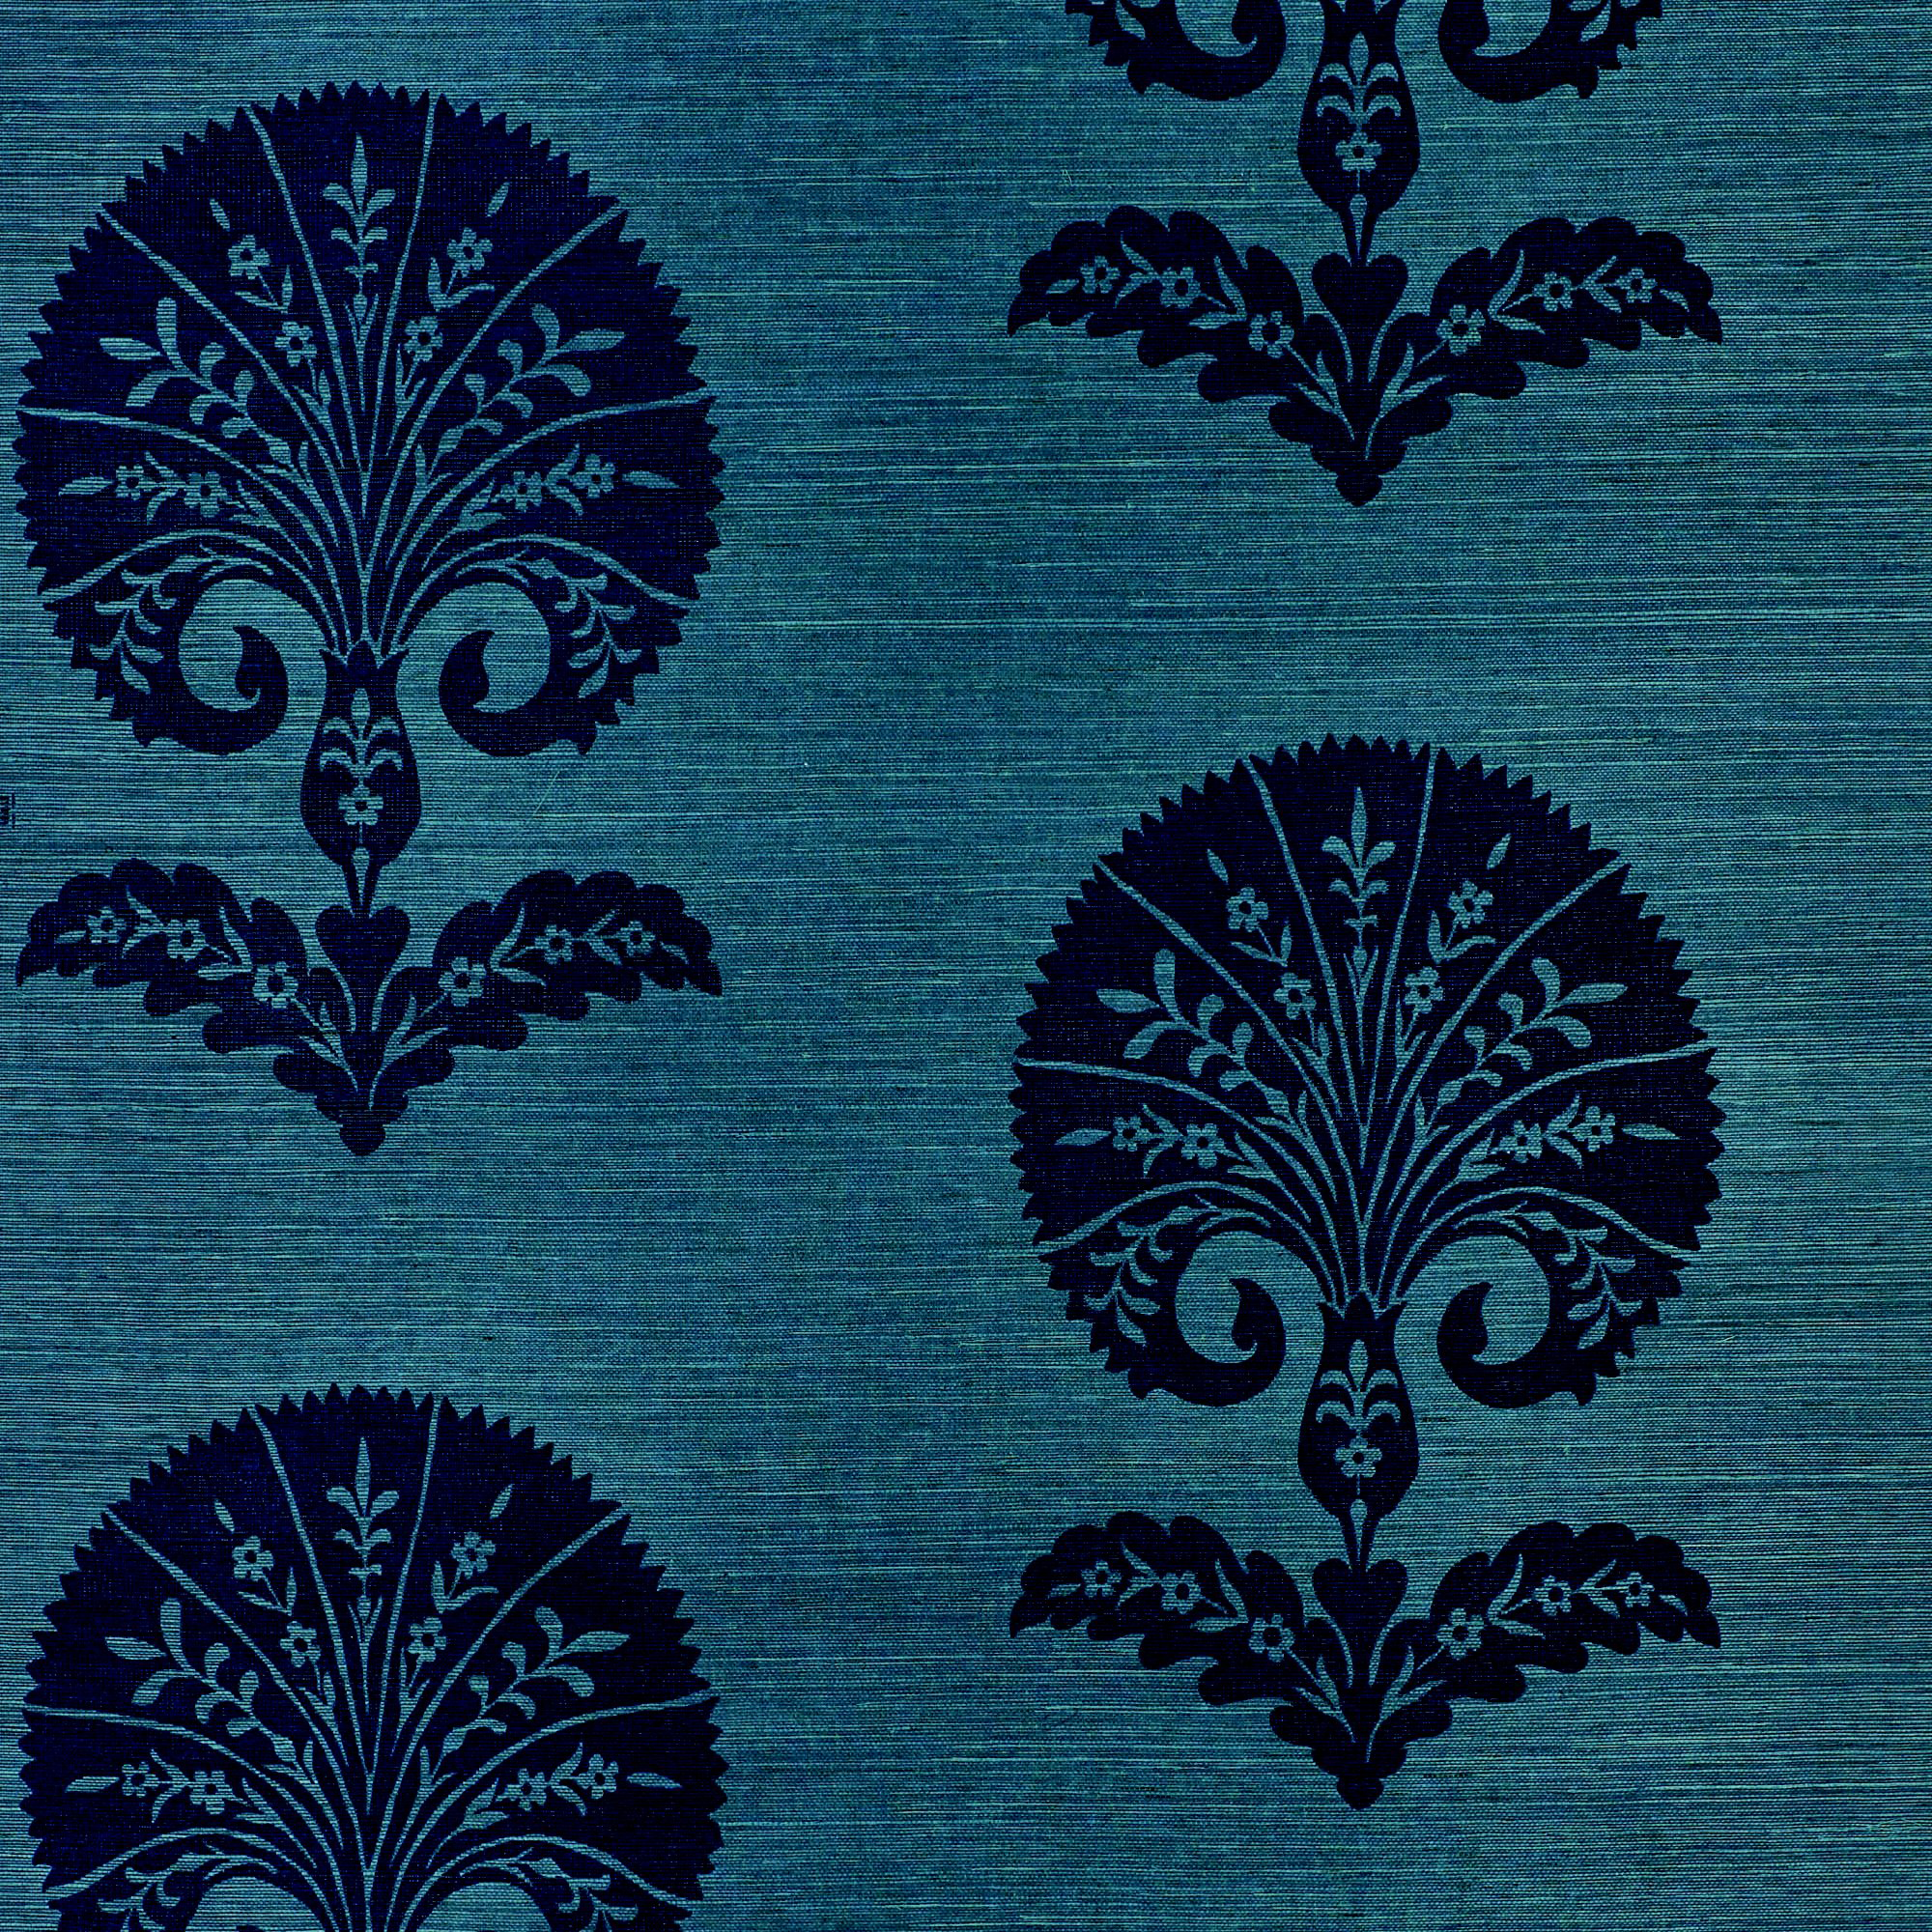 Schumacher Ottoman Flower Sisal Wallpaper In Peacock Chairish